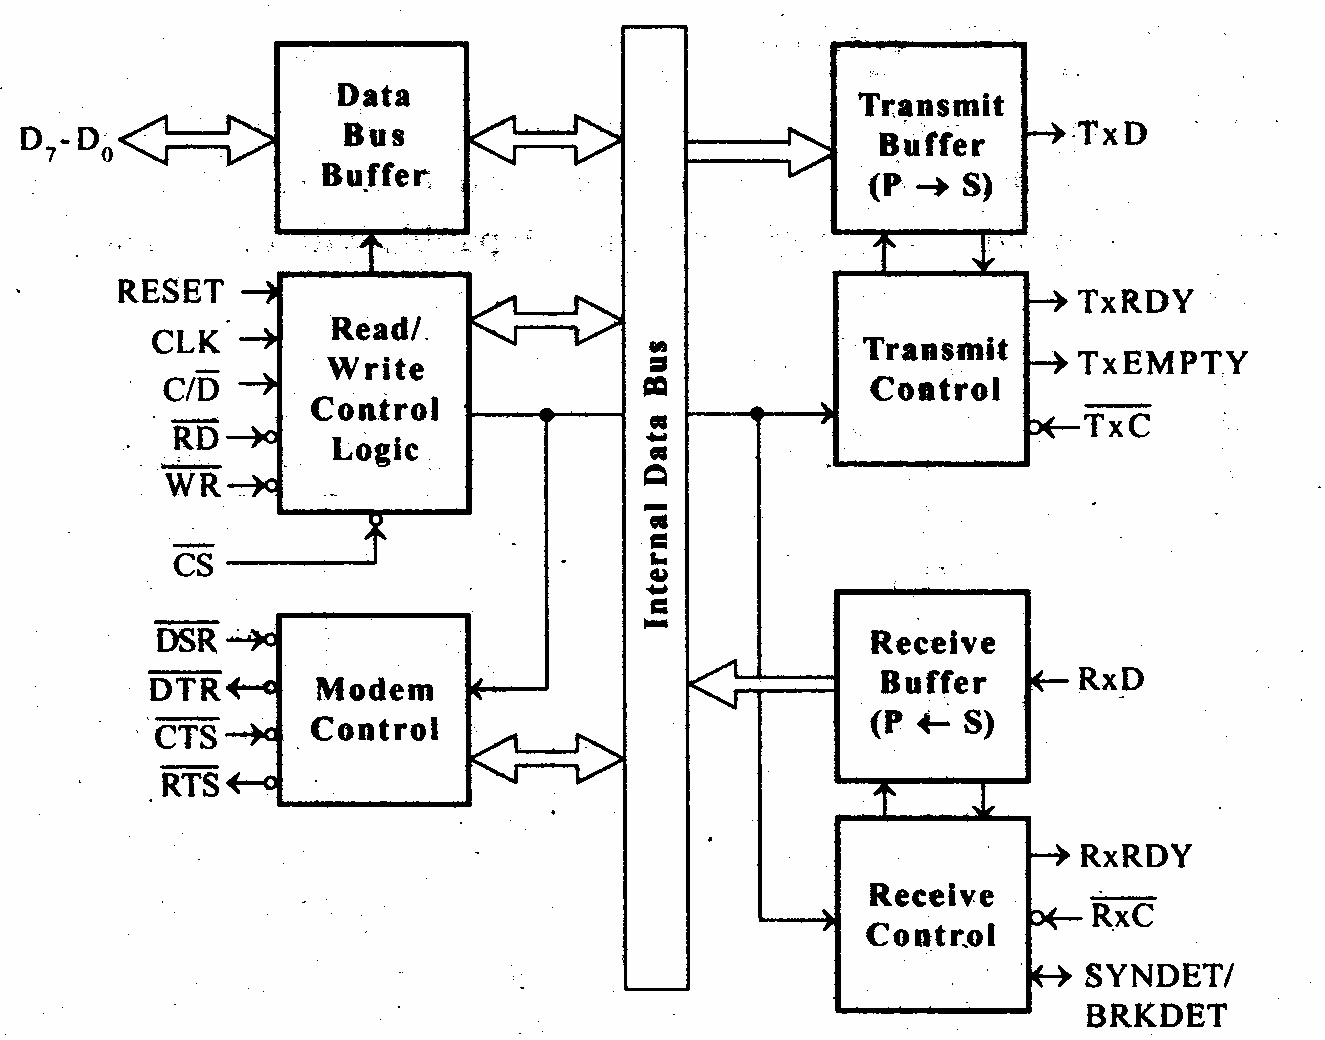 Inside microprocessor on 8086 microprocessor architecture diagram ccuart Image collections